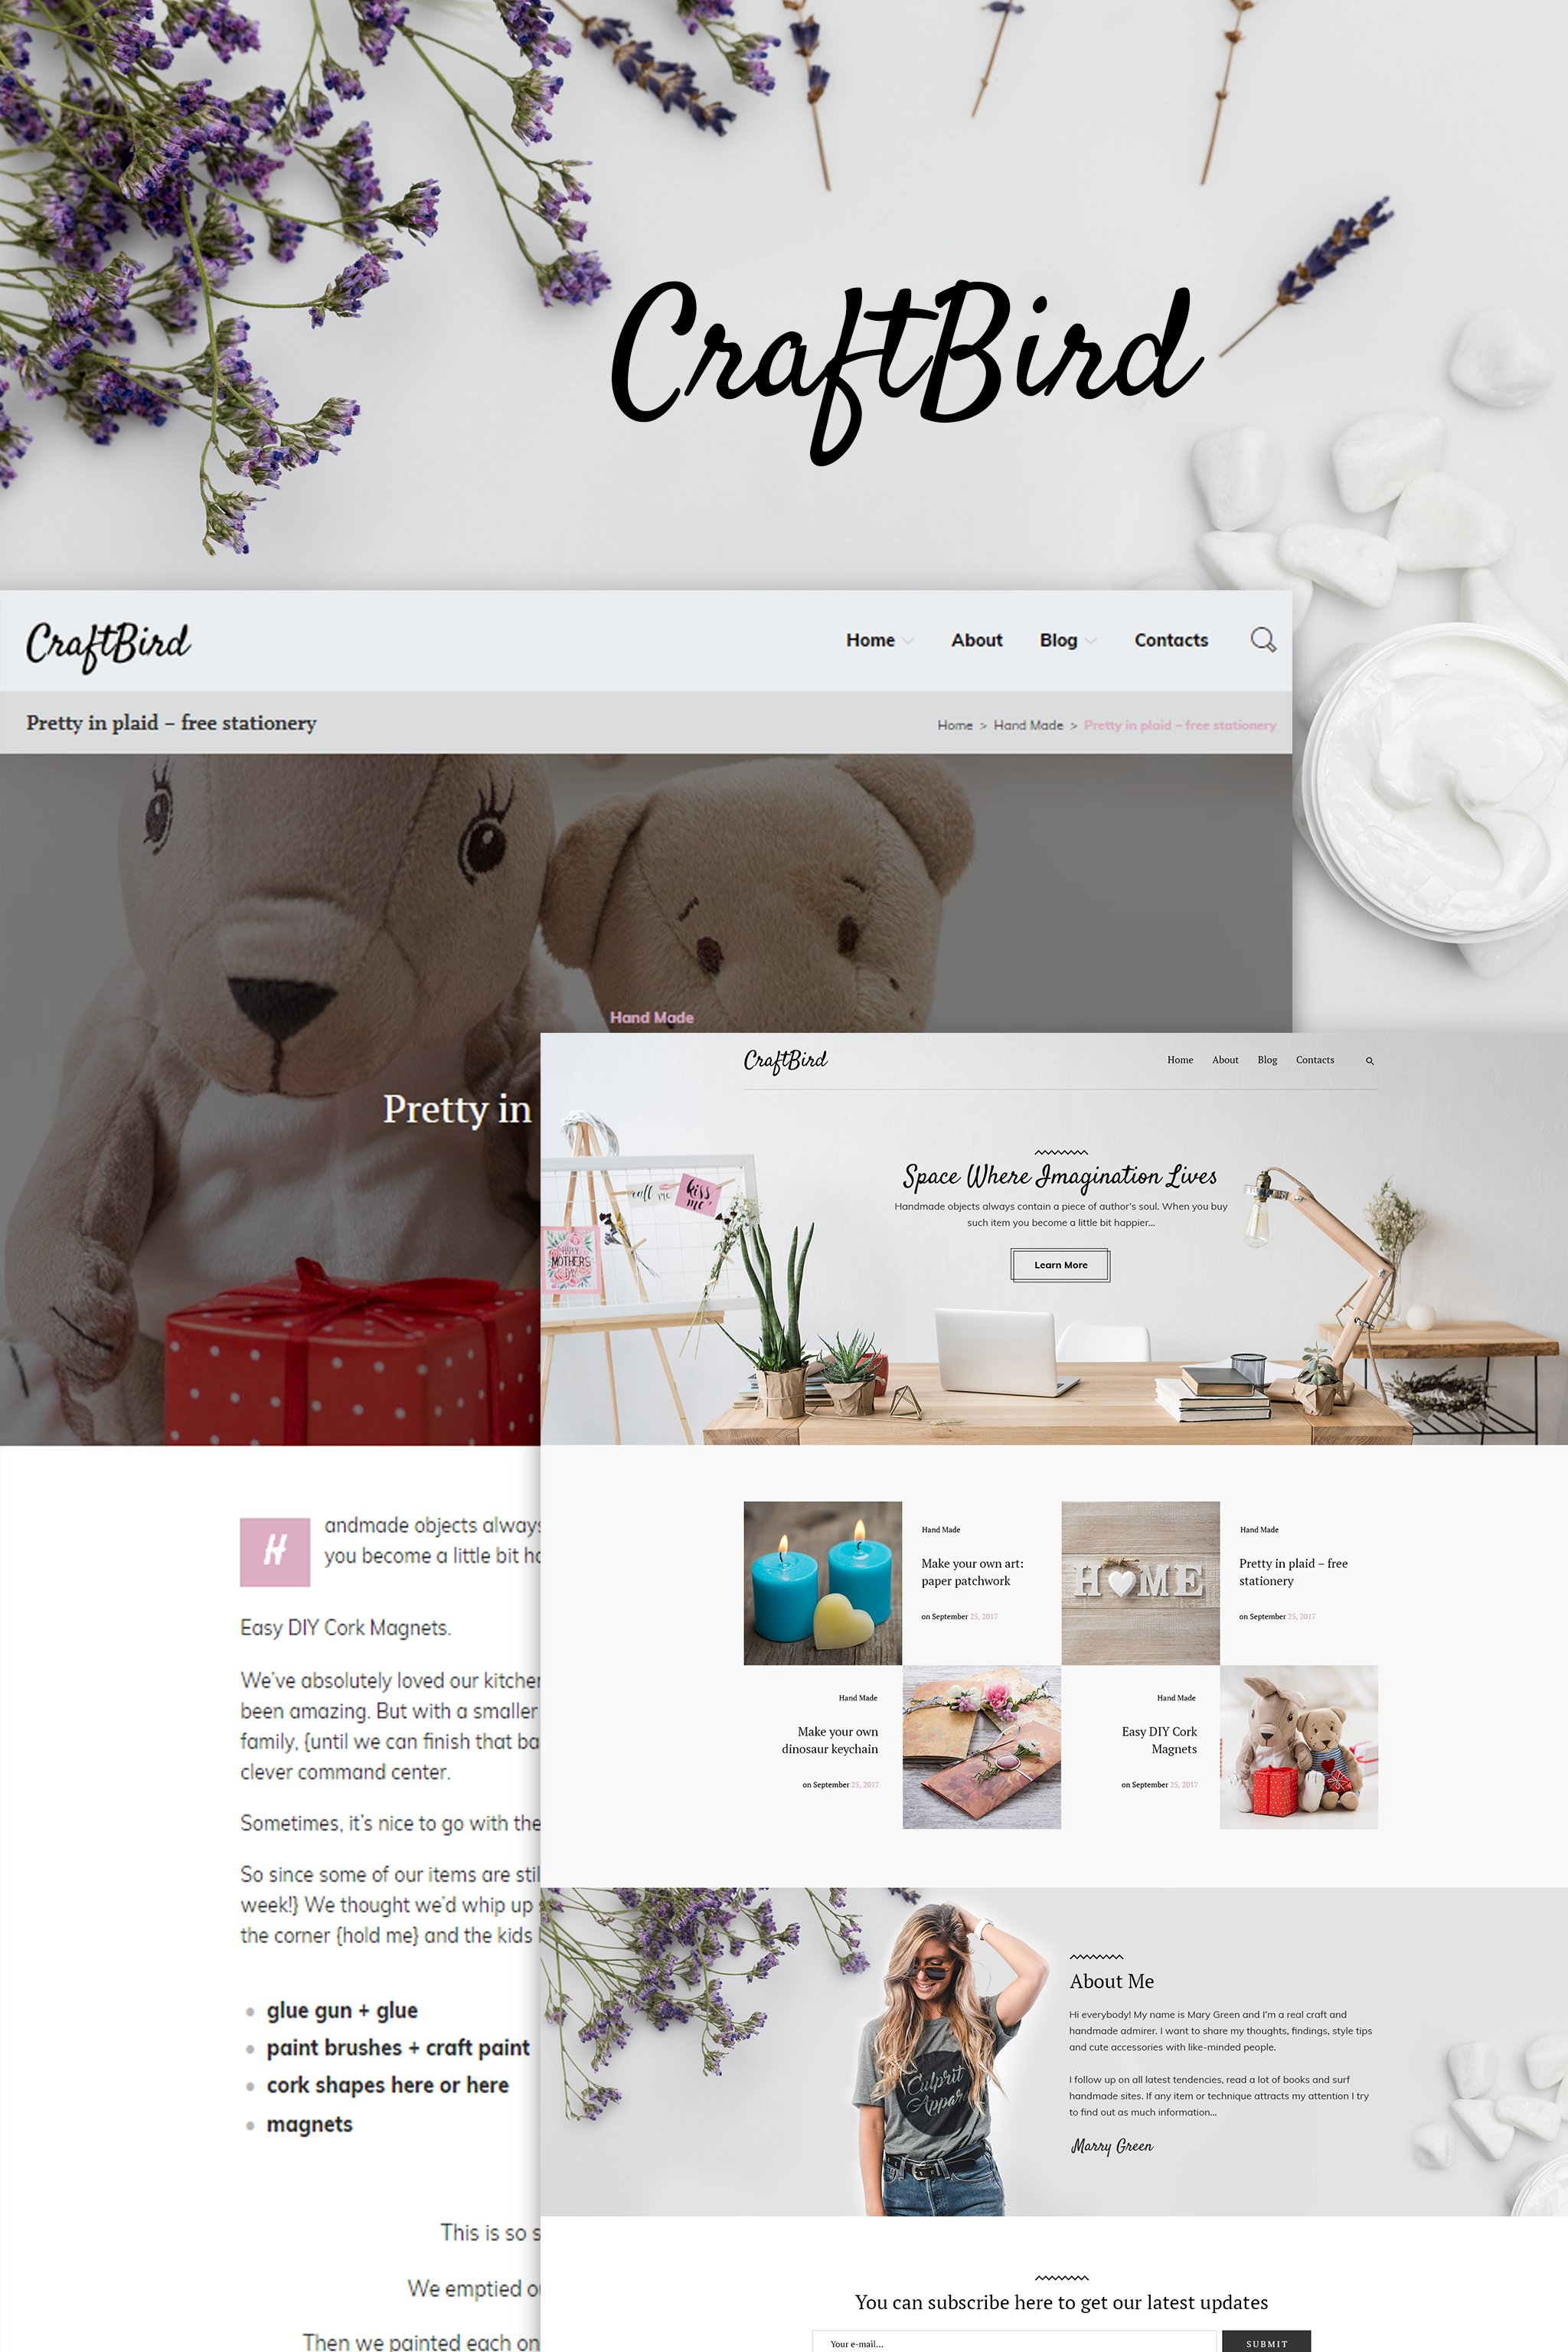 CraftBird - Handmade Artist Personal Blog WordPress Theme WordPress Theme